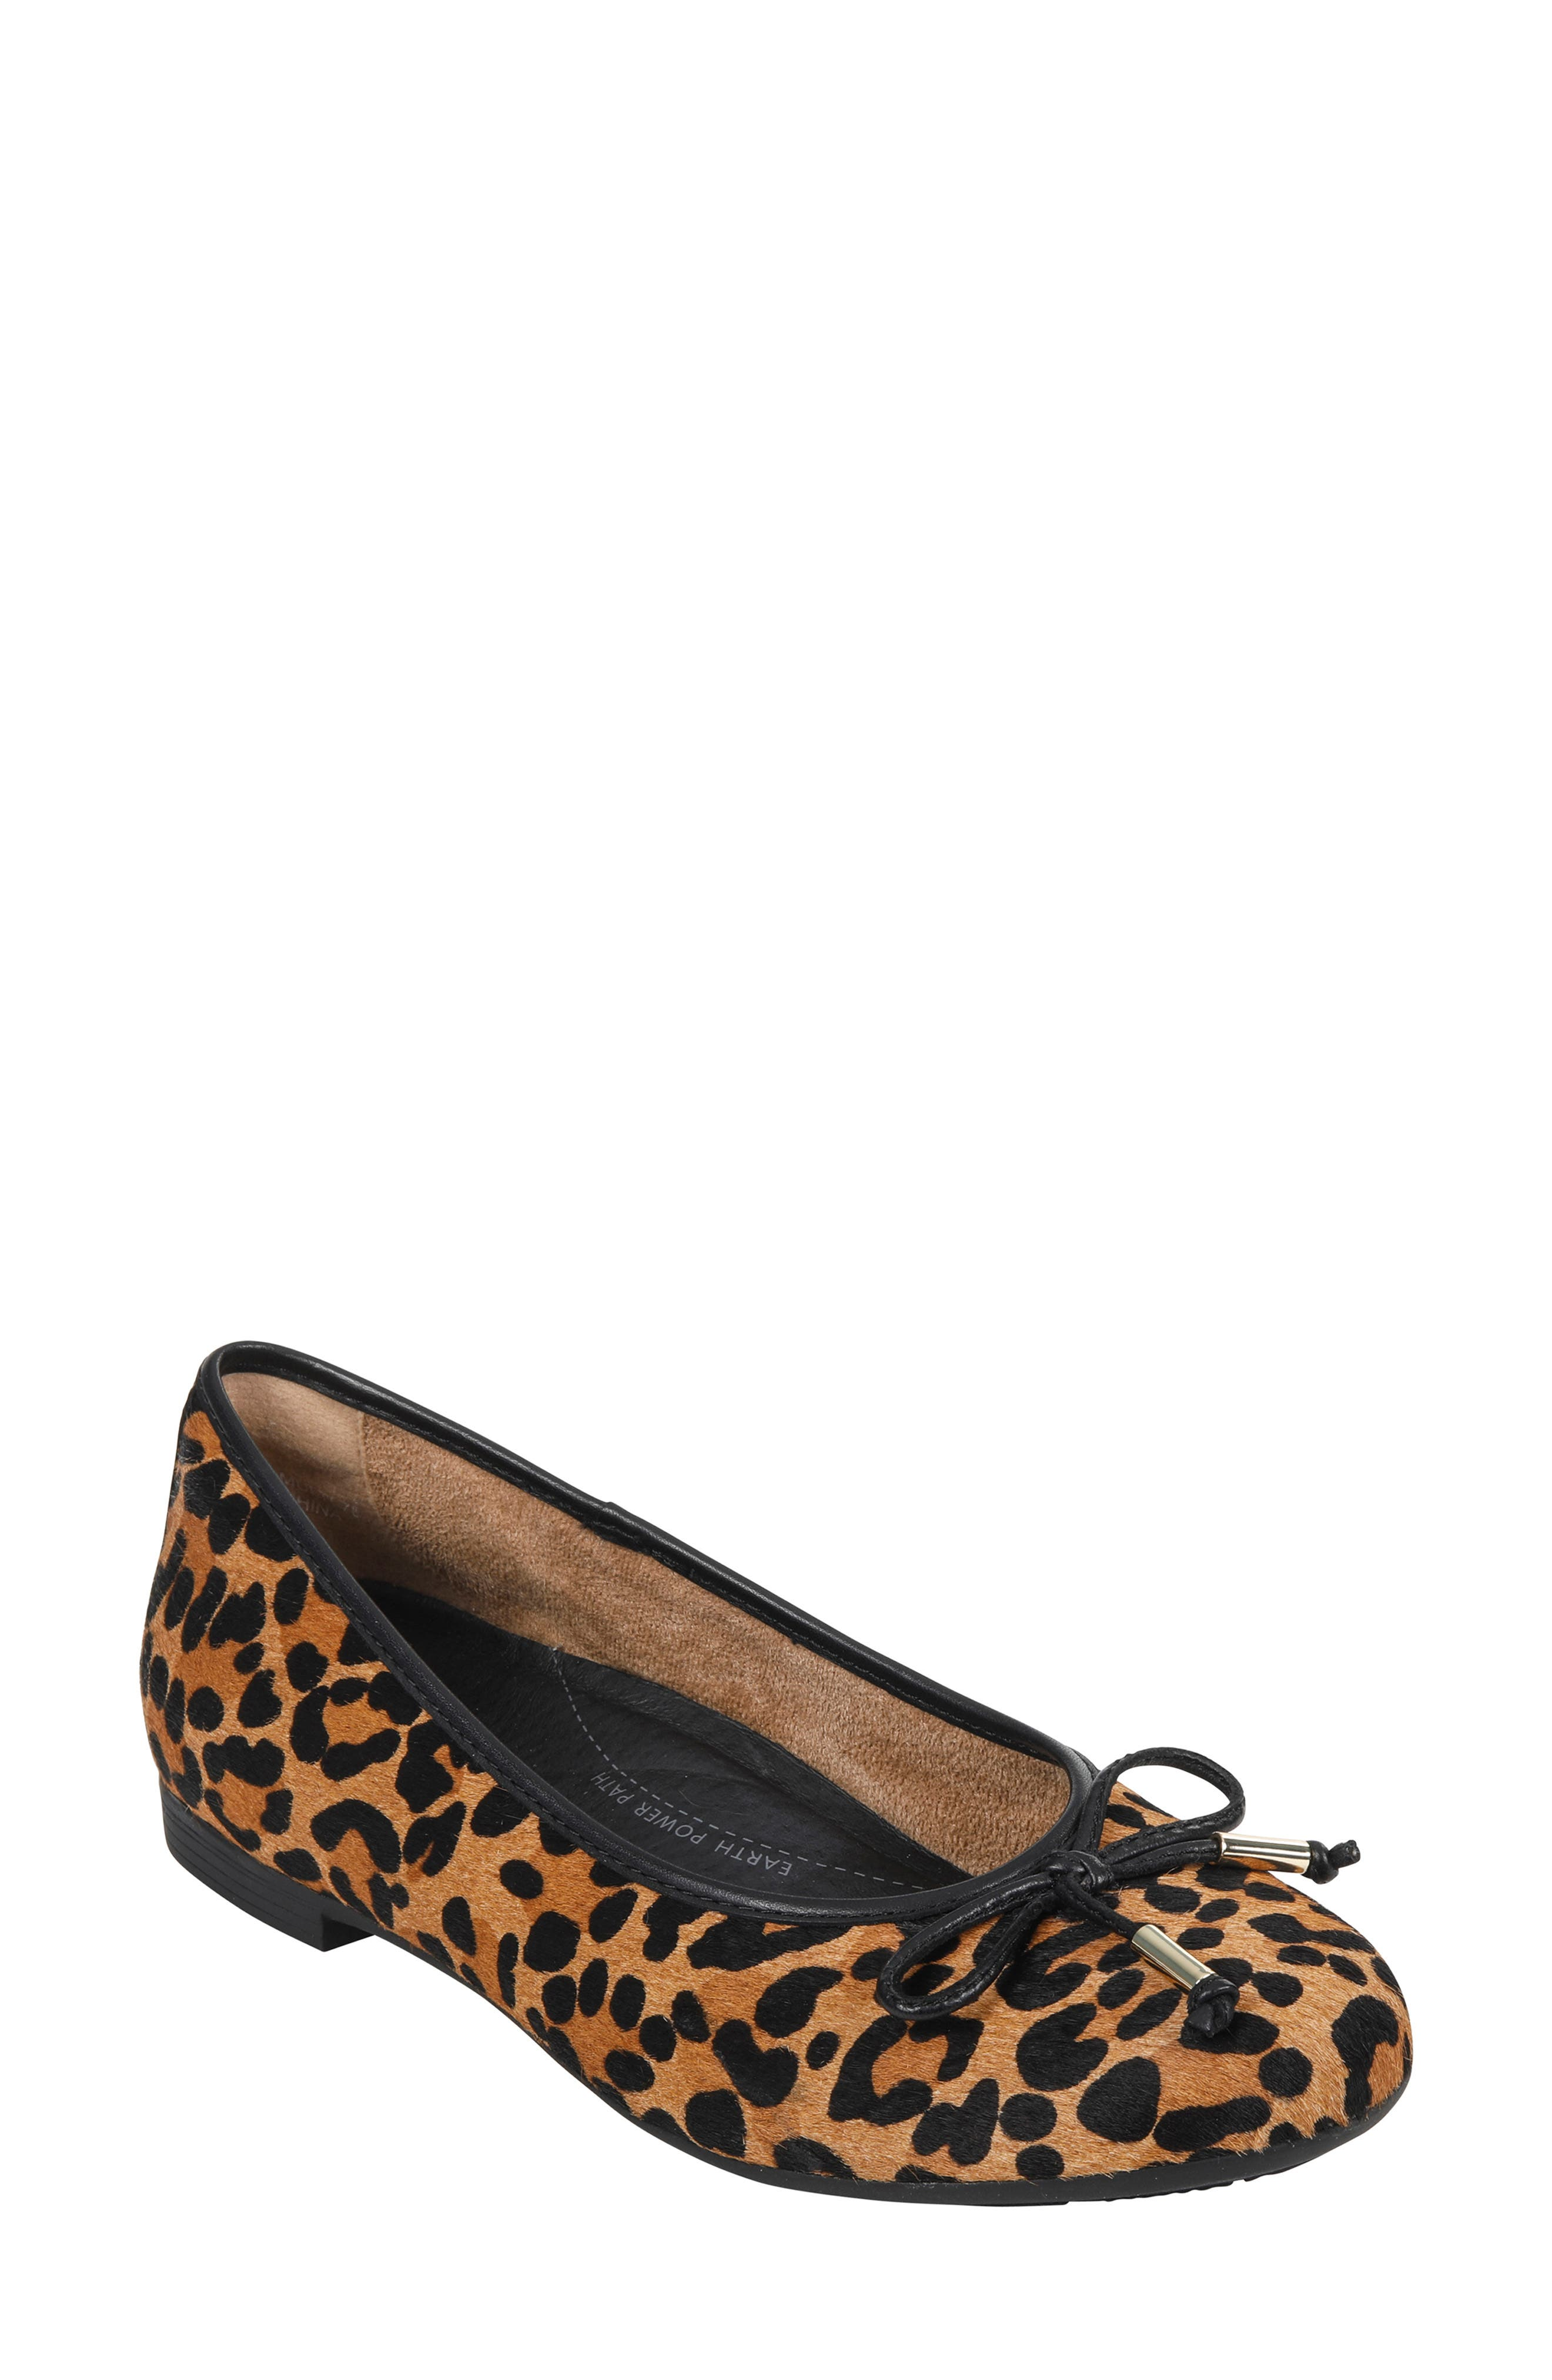 Alina Skimmer Flat,                         Main,                         color, BROWN PRINT LEATHER